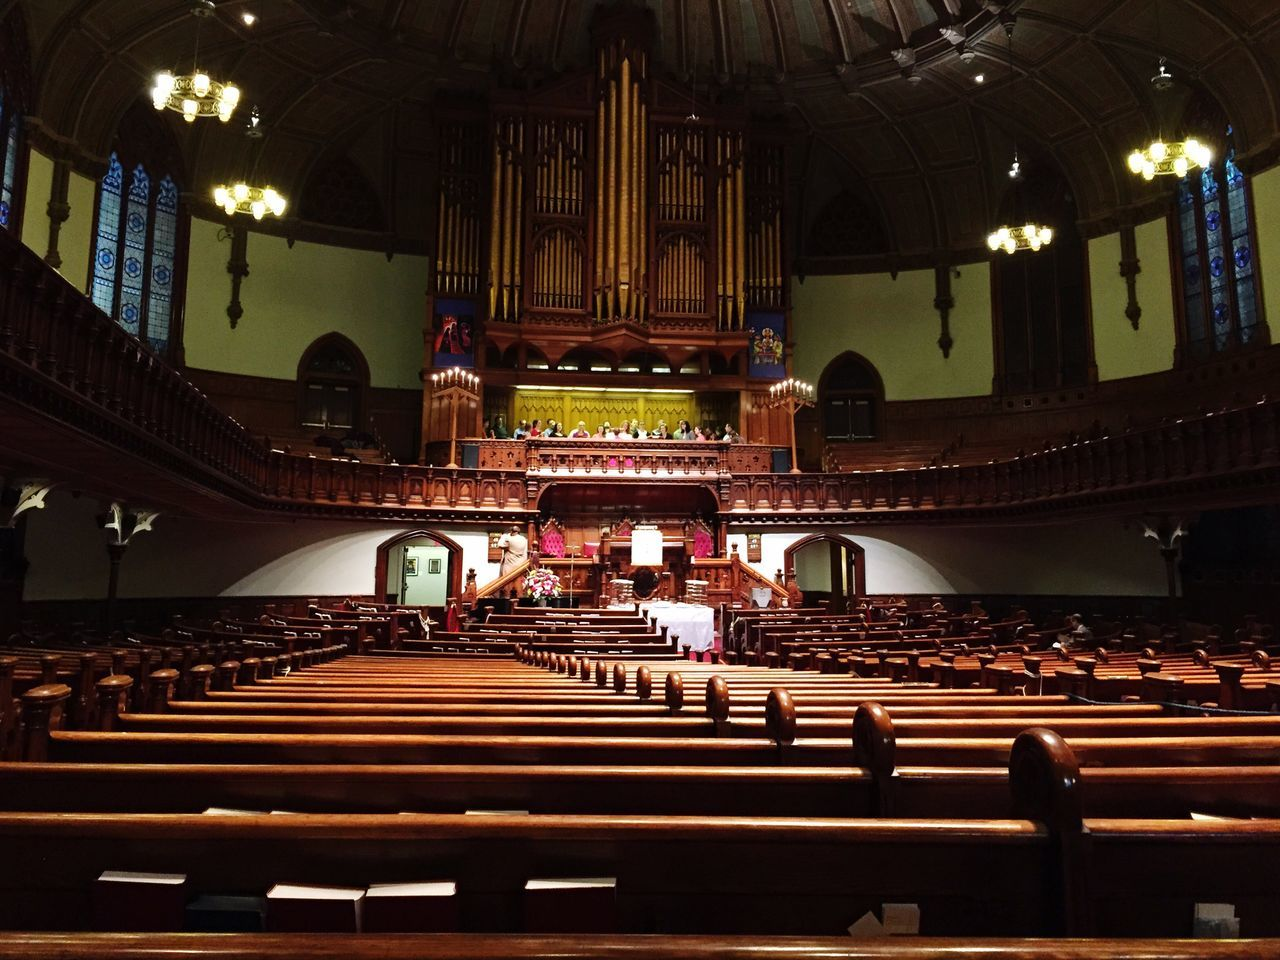 music, indoors, arts culture and entertainment, real people, architecture, sitting, pew, built structure, men, auditorium, audience, large group of people, seat, concert hall, musical instrument, day, people